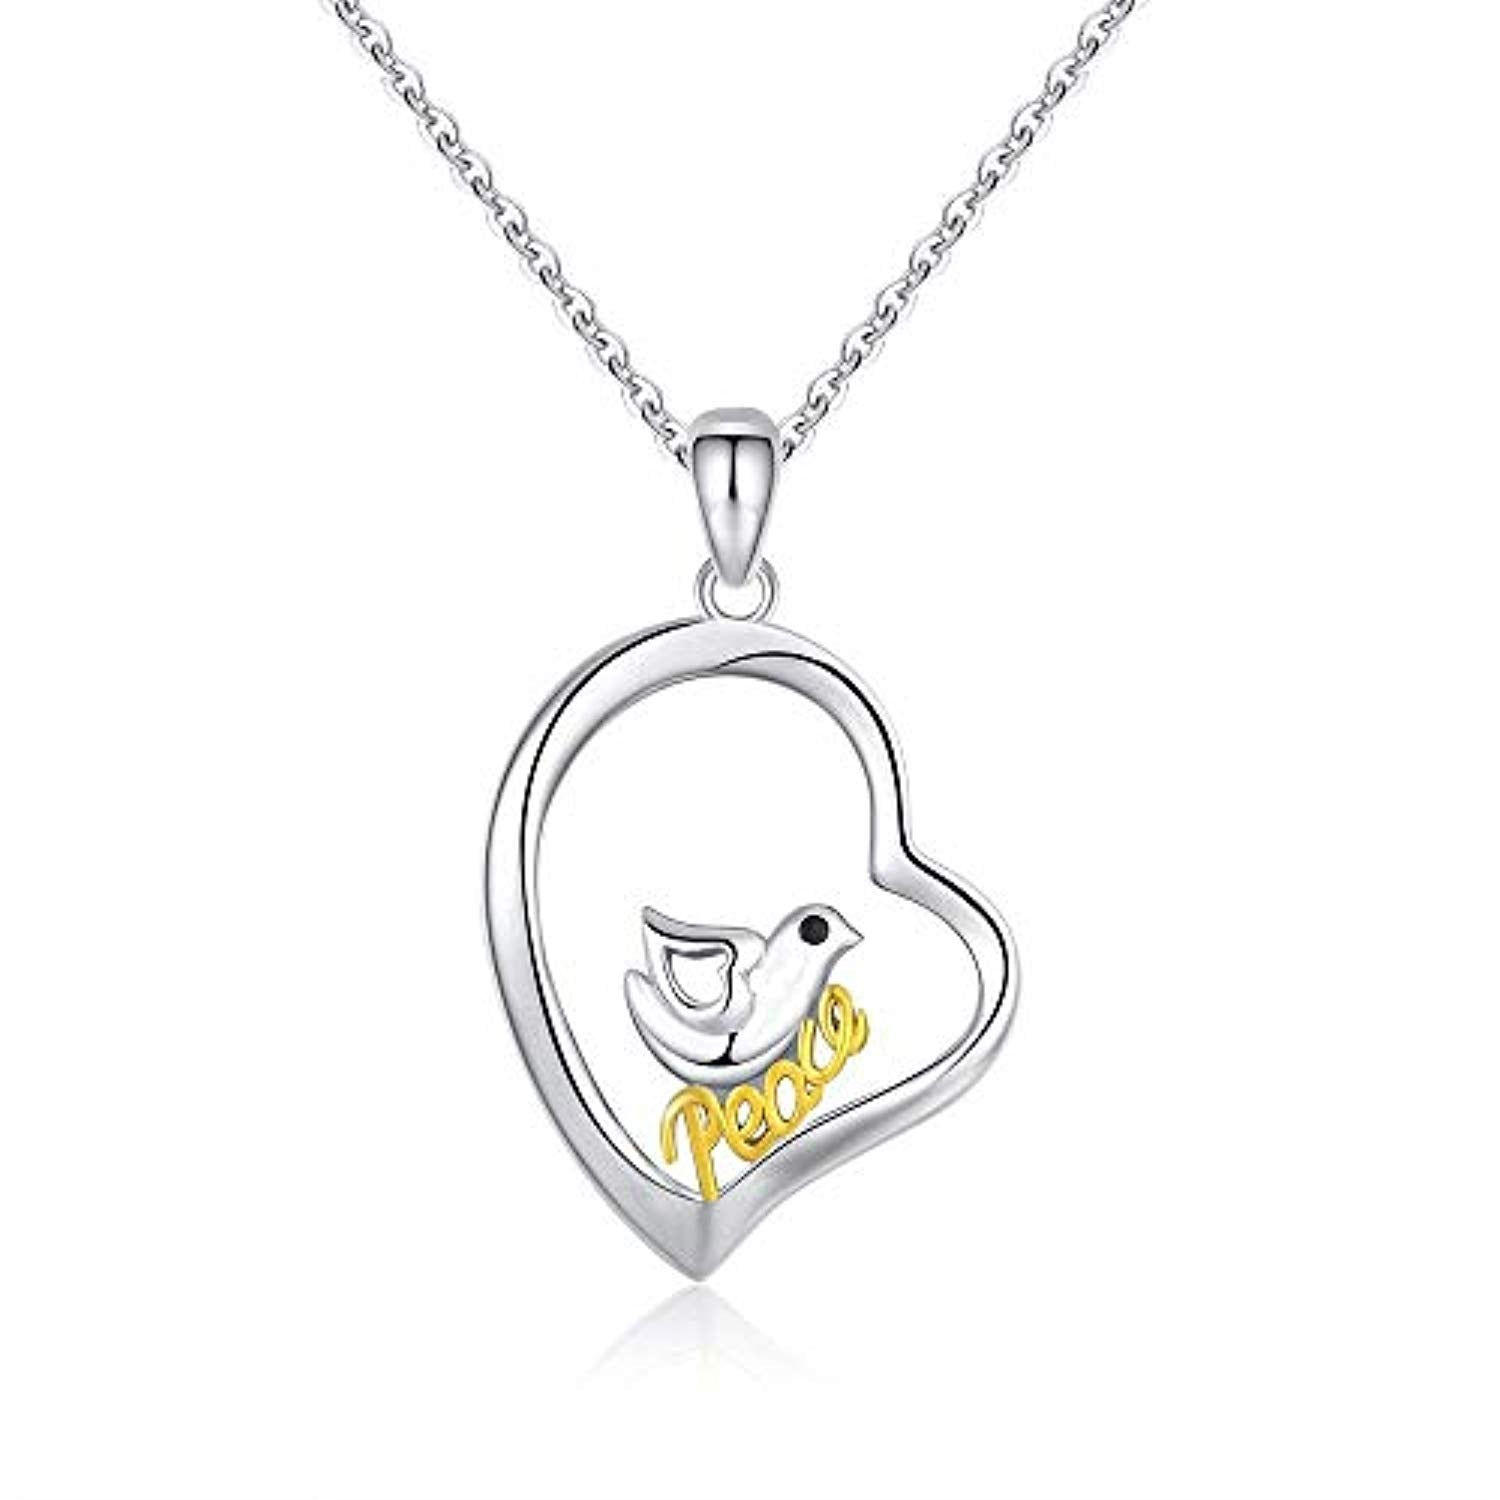 Dove Necklace 925 Sterling Silver Dove Bird of Love Peace Pendant Necklace for Women Graduated Gifts